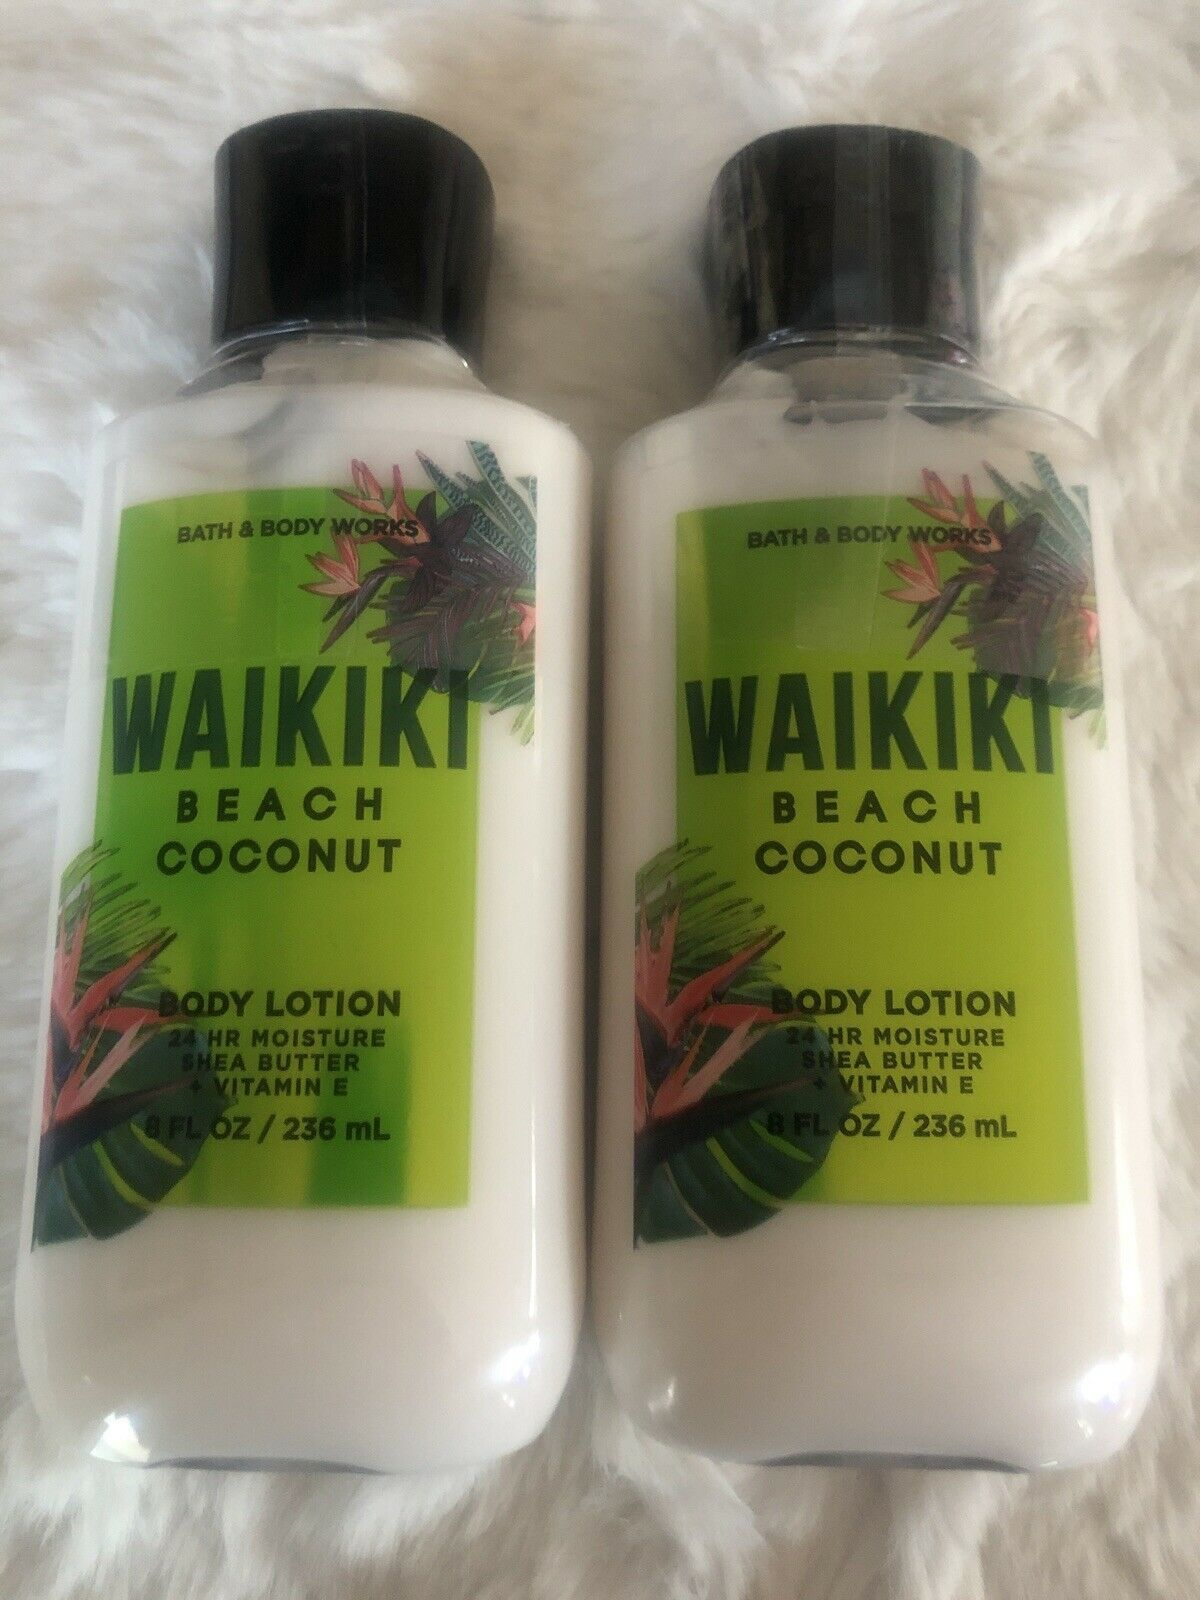 Primary image for BATH & BODY WORKS WAIKIKI BEACH COCONUT BODY LOTION 8 OZ, LOT OF 2 BOTTLES, NEW